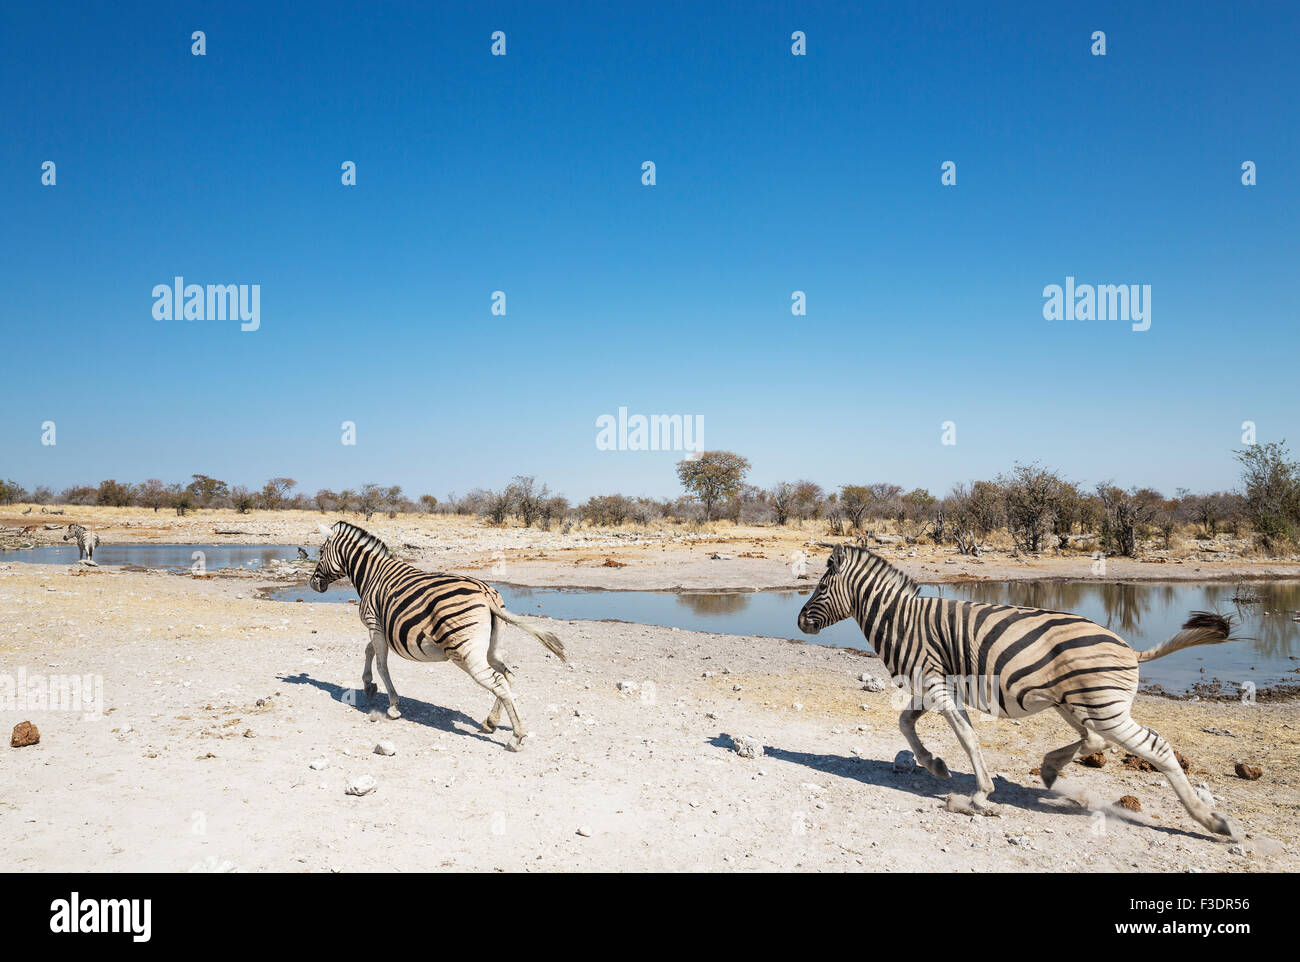 Burchell's zebras (Equus quagga burchellii) rushing towards waterhole, Etosha National Park, Namibia - Stock Image